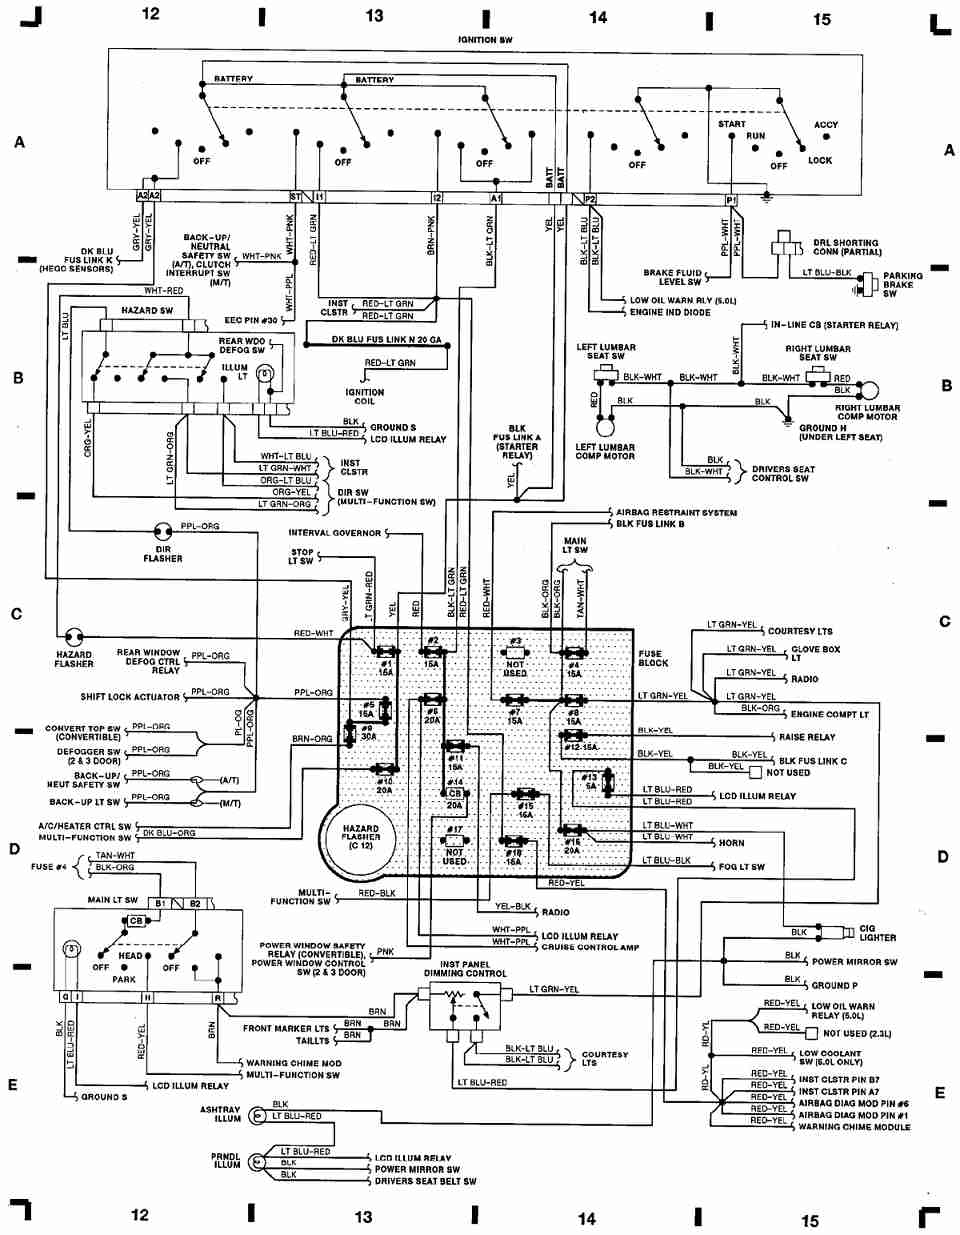 hight resolution of 93 mustang wiring diagram wiring diagram blogs 1993 cadillac seville wiring diagram 1993 ford mustang wiring diagram